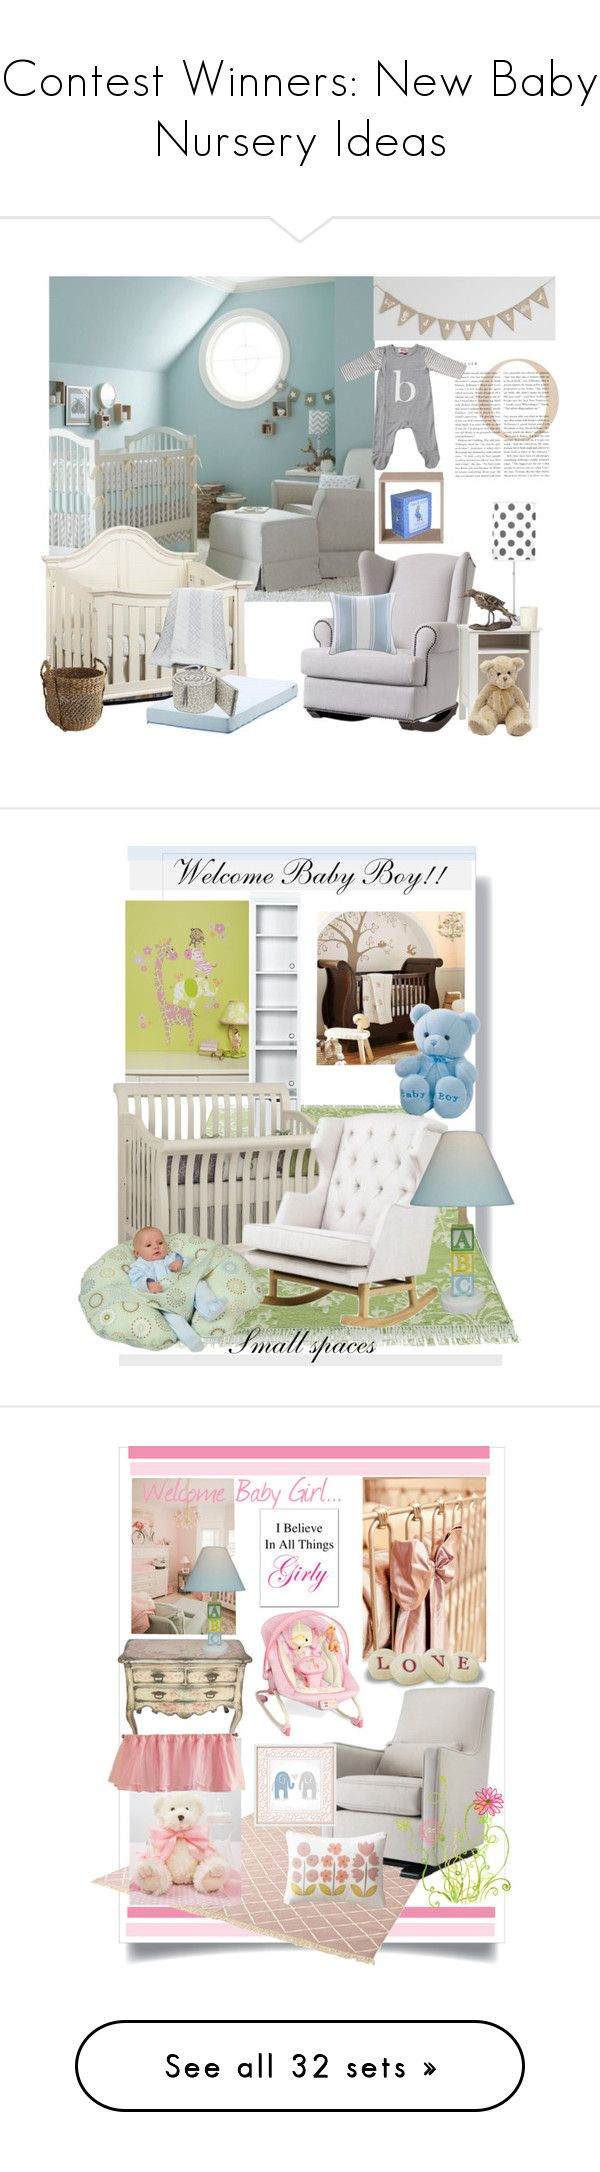 """Contest Winners: New Baby Nursery Ideas"" by bluecatreview13 ❤ liked on Polyvore featuring interior, interiors, interior design, home, home decor, interior decorating, Lazy Susan, Muuto, Bamford and Pier 1 Imports"